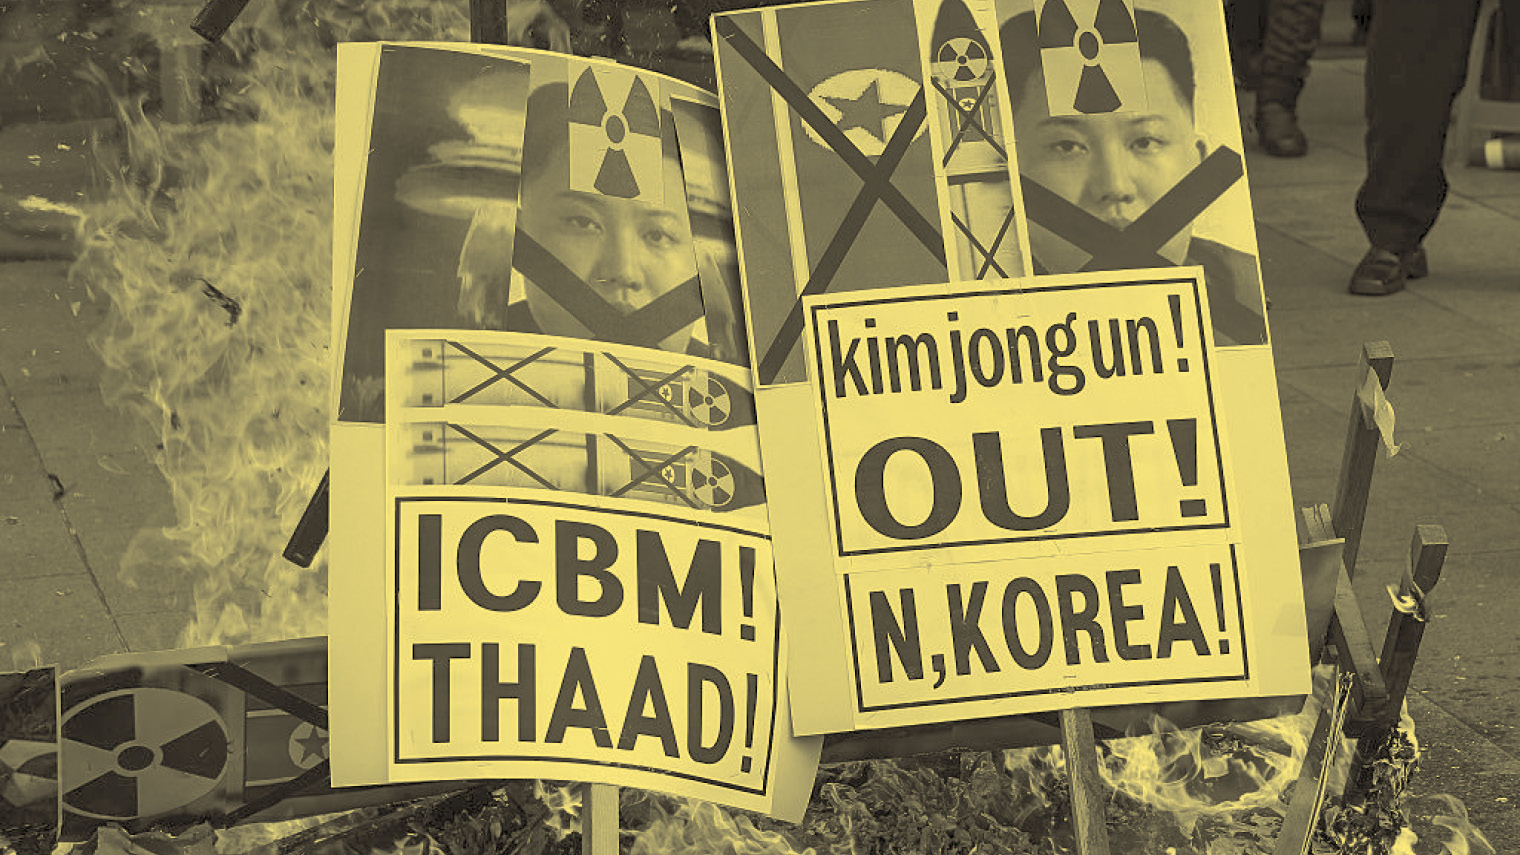 In January, North Korea conducted its first nuclear test in almost three years, detonating a bomb with an estimated yield of between 7-9kt – around half that of the US bomb dropped on Hiroshima in 1945 – sparking protests in South Korea and ending hopes that the country would suspend its atomic programme.